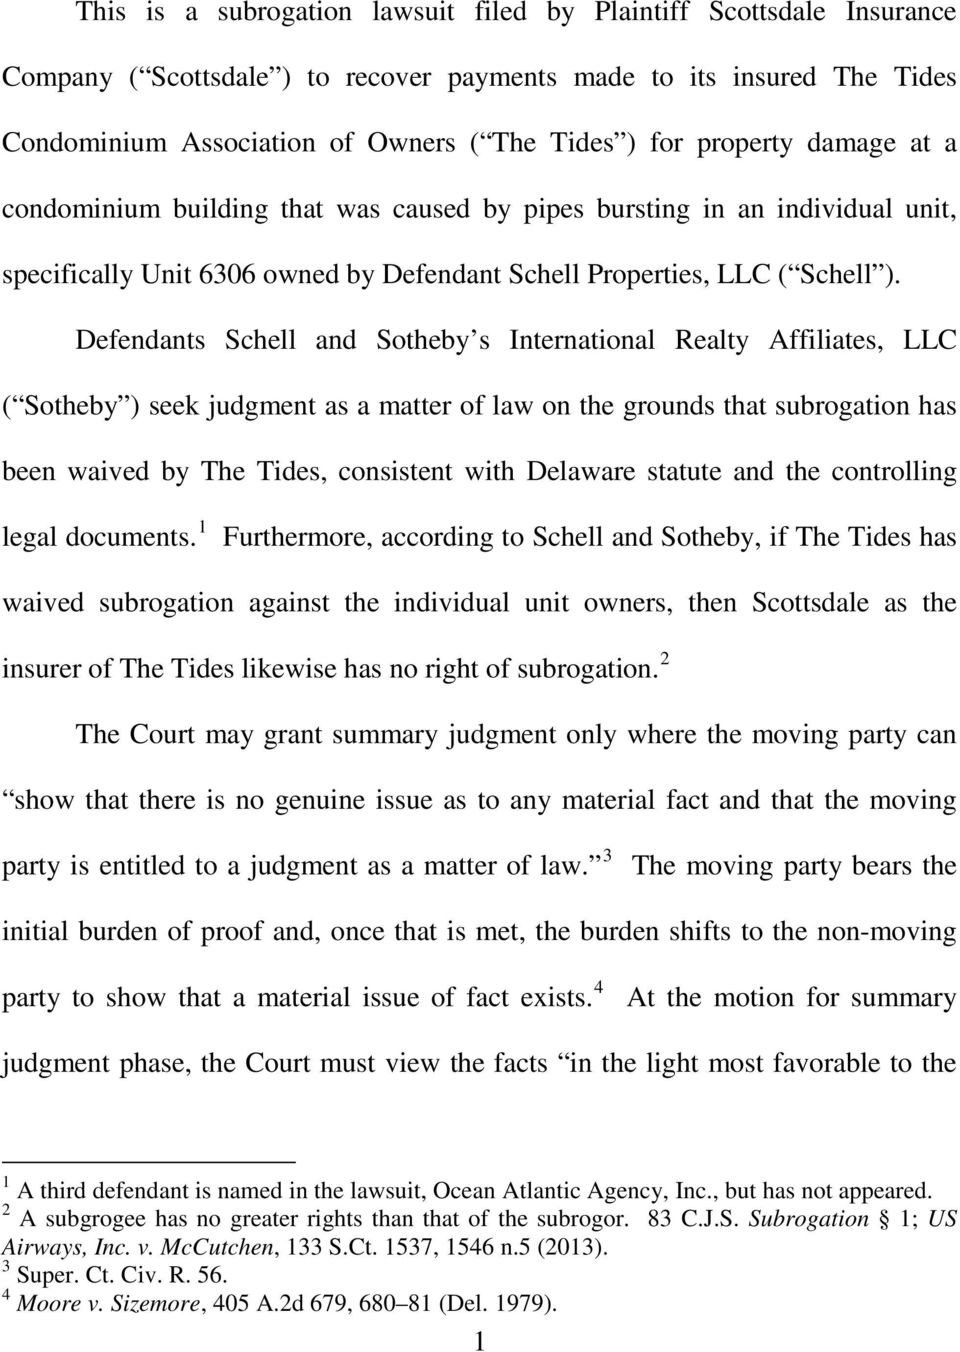 Defendants Schell and Sotheby s International Realty Affiliates, LLC ( Sotheby ) seek judgment as a matter of law on the grounds that subrogation has been waived by The Tides, consistent with